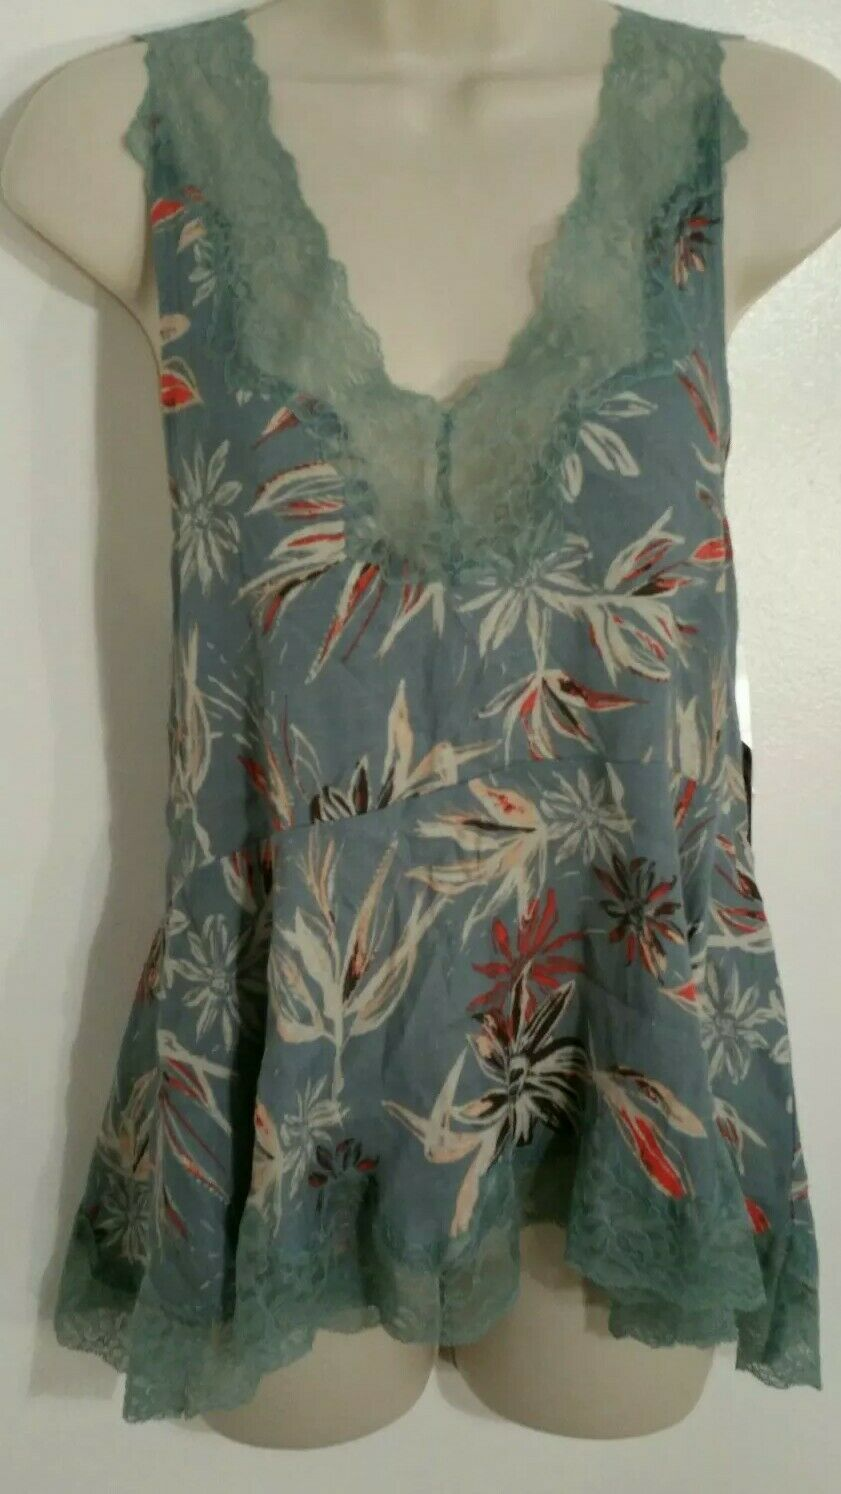 NWT Free People Intimately Gorgeous Aqua Lace Floral Babydoll Sexy Top XS  A3